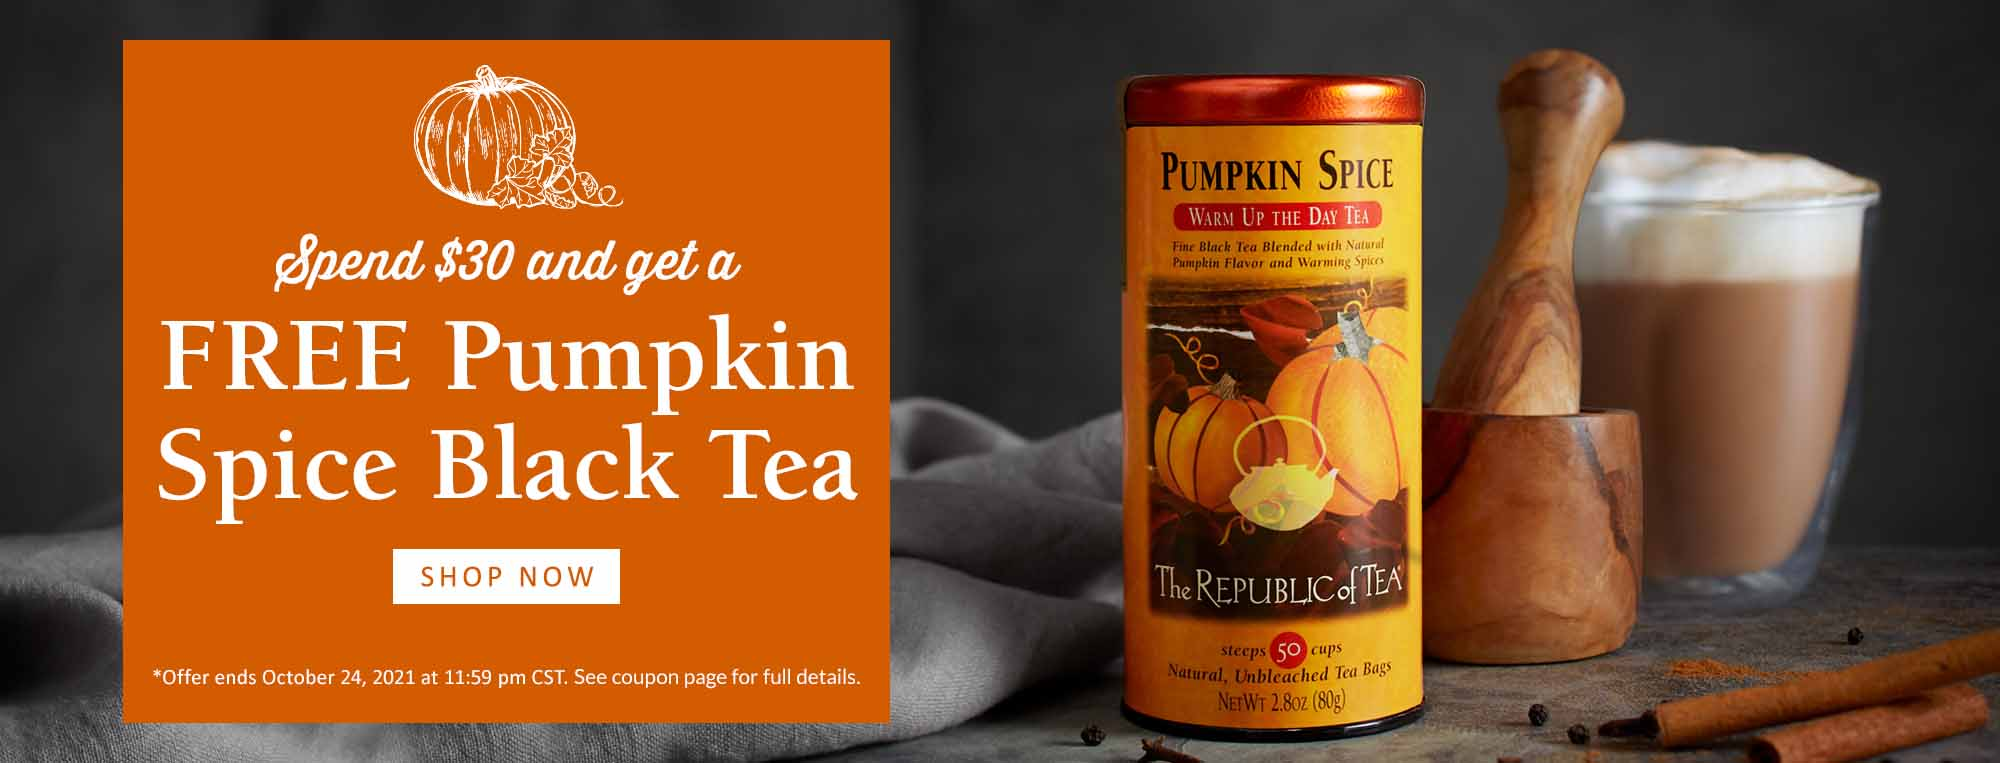 Free Tin of Pumpkin Spice Black Tea with Purchase Over $30! | Hurry Offer Ends Sunday, October 24, 2021!